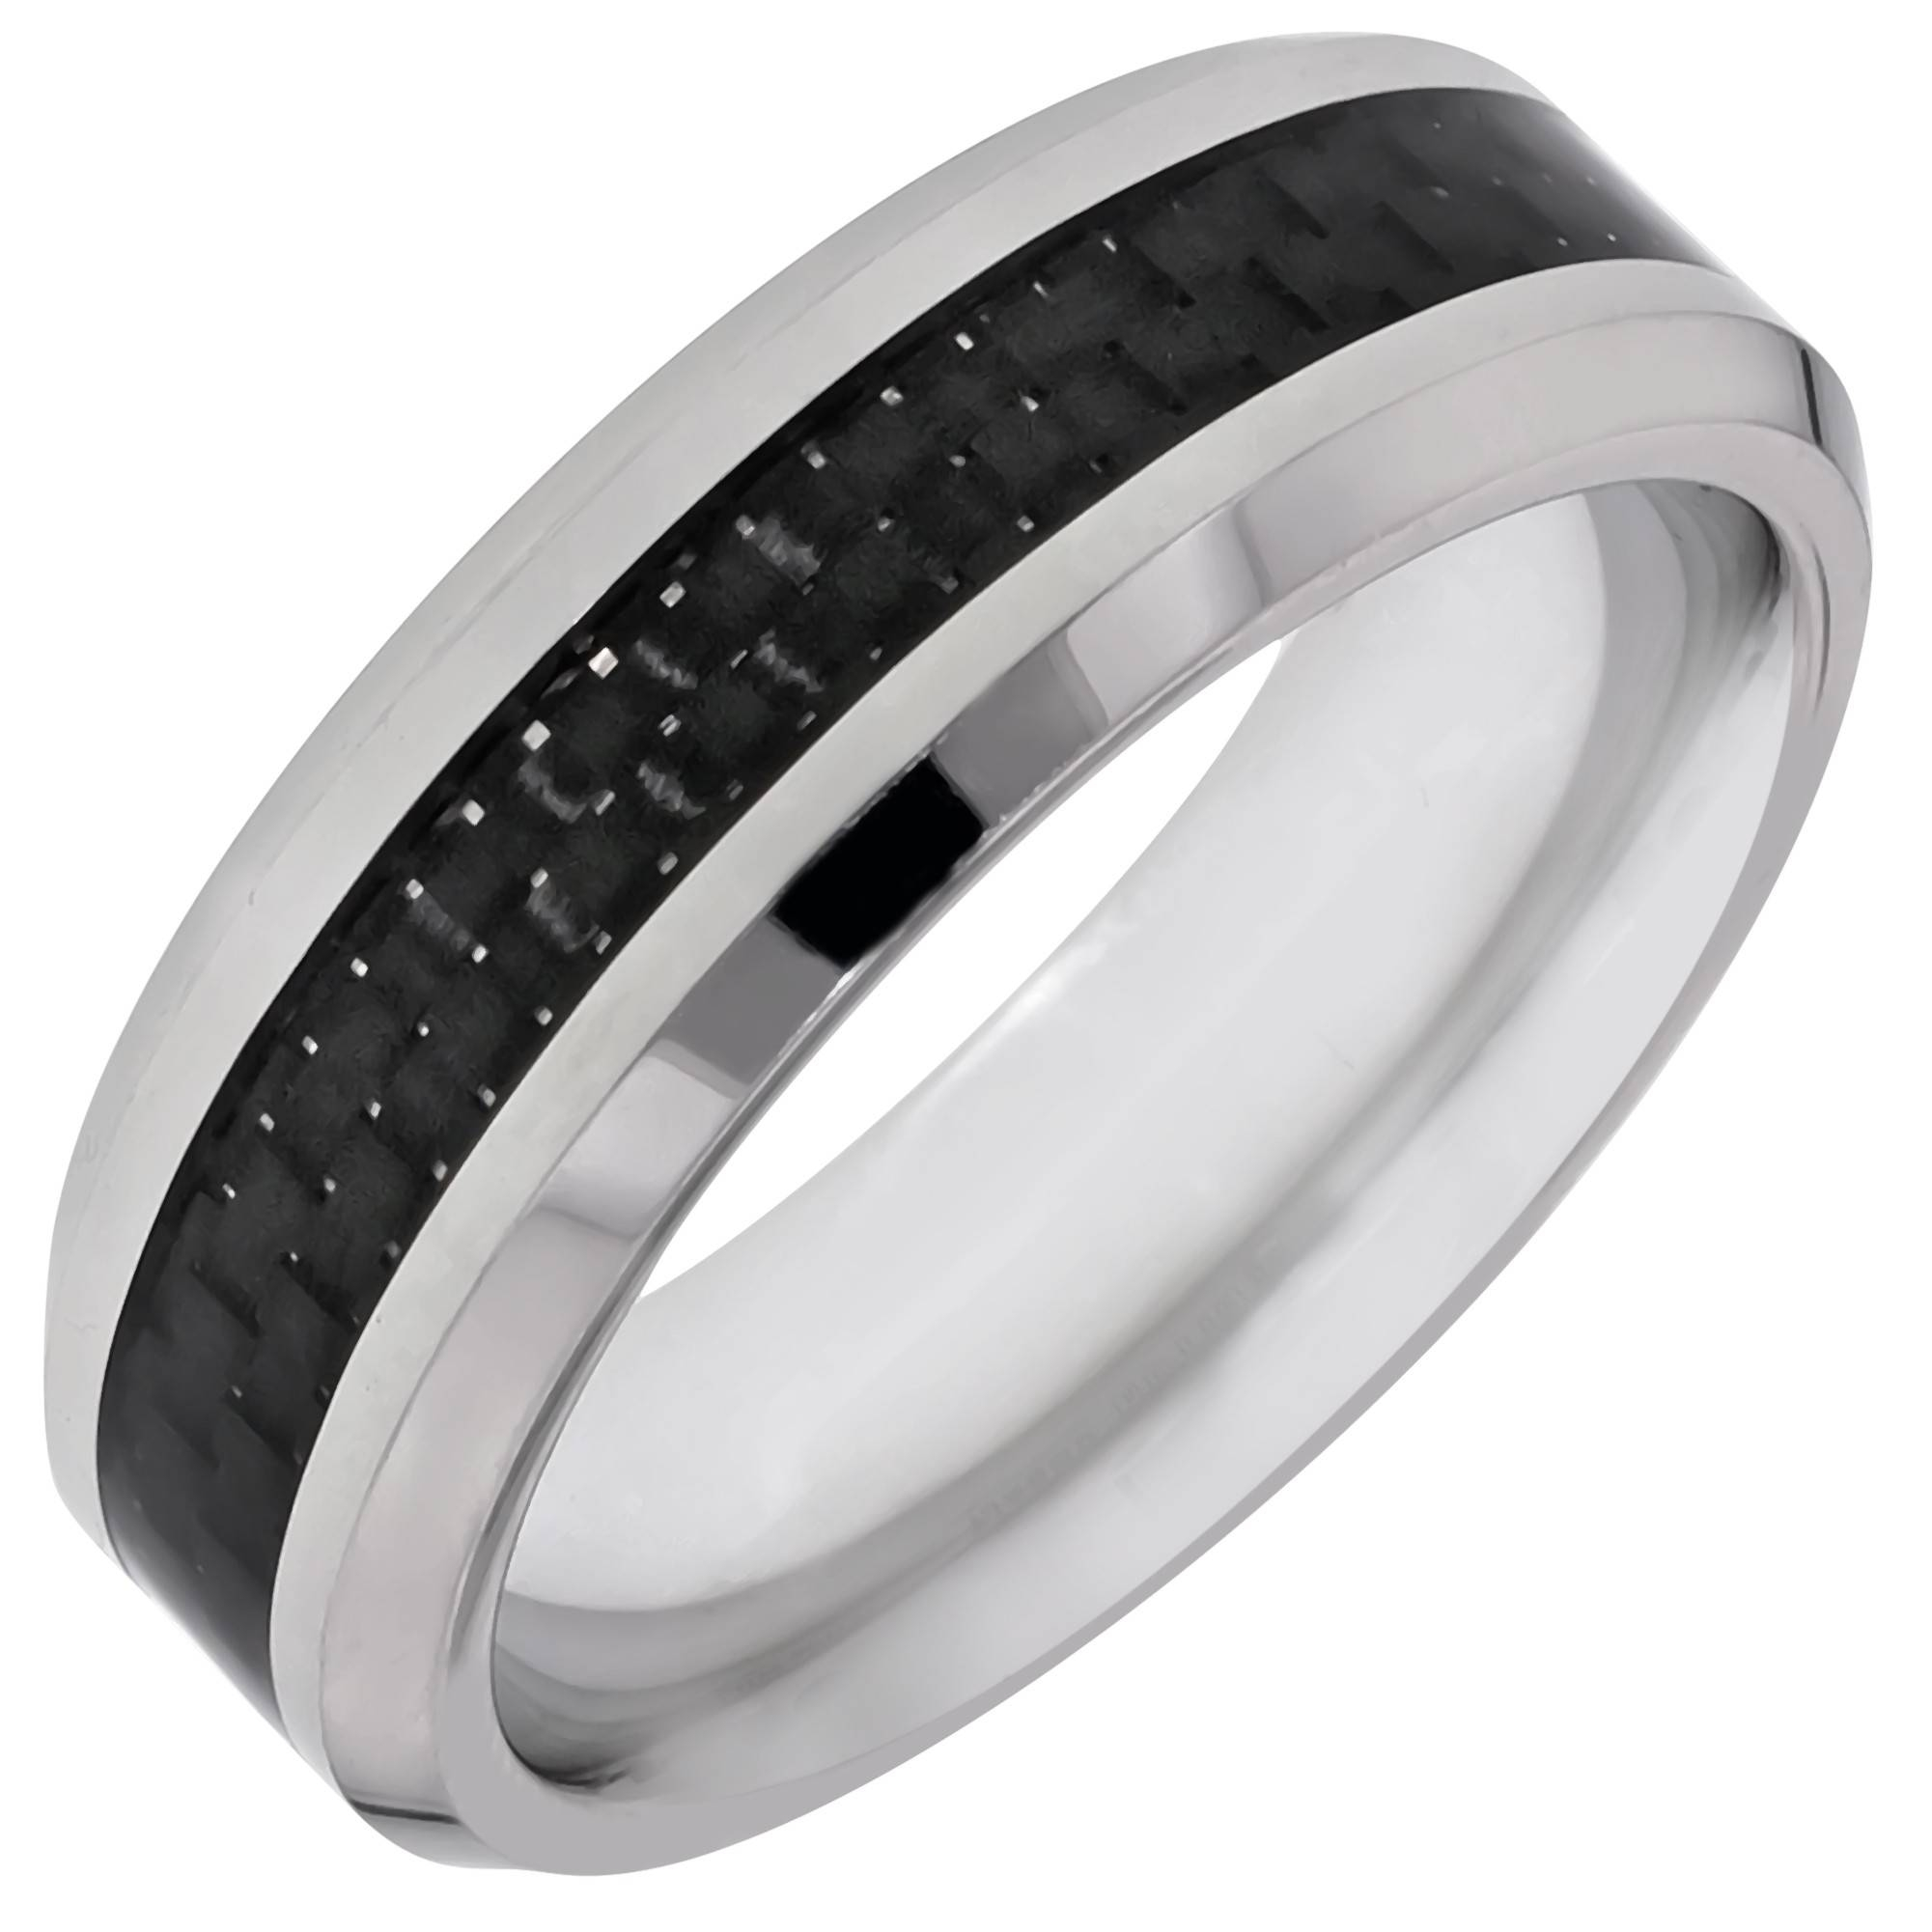 Mens Cobalt Chrome And Carbon Fiber Comfort Fit Wedding Band (7Mm) Pertaining To Carbon Wedding Bands (View 13 of 15)